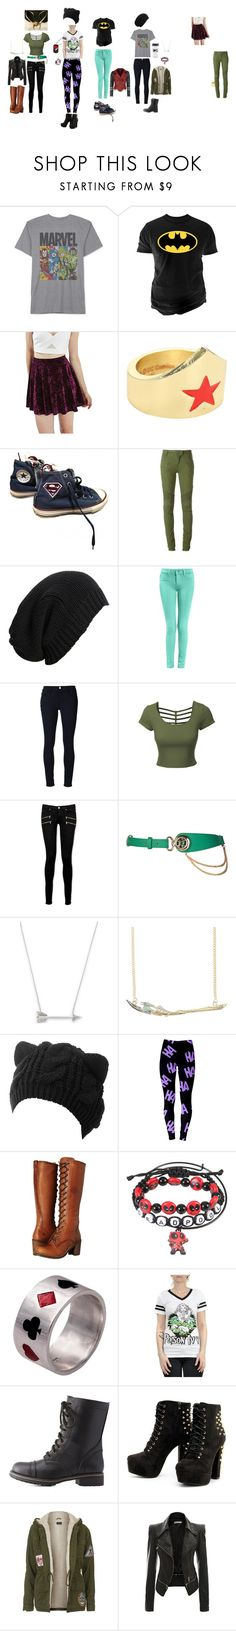 """Marvel and DC, Heroes vs Villains"" by caspergirt ❤ liked on Polyvore featuring JEM, Changes, Topshop, DC Comics, Converse, Balmain, AllSaints, Frame, LE3NO and Paige Denim"